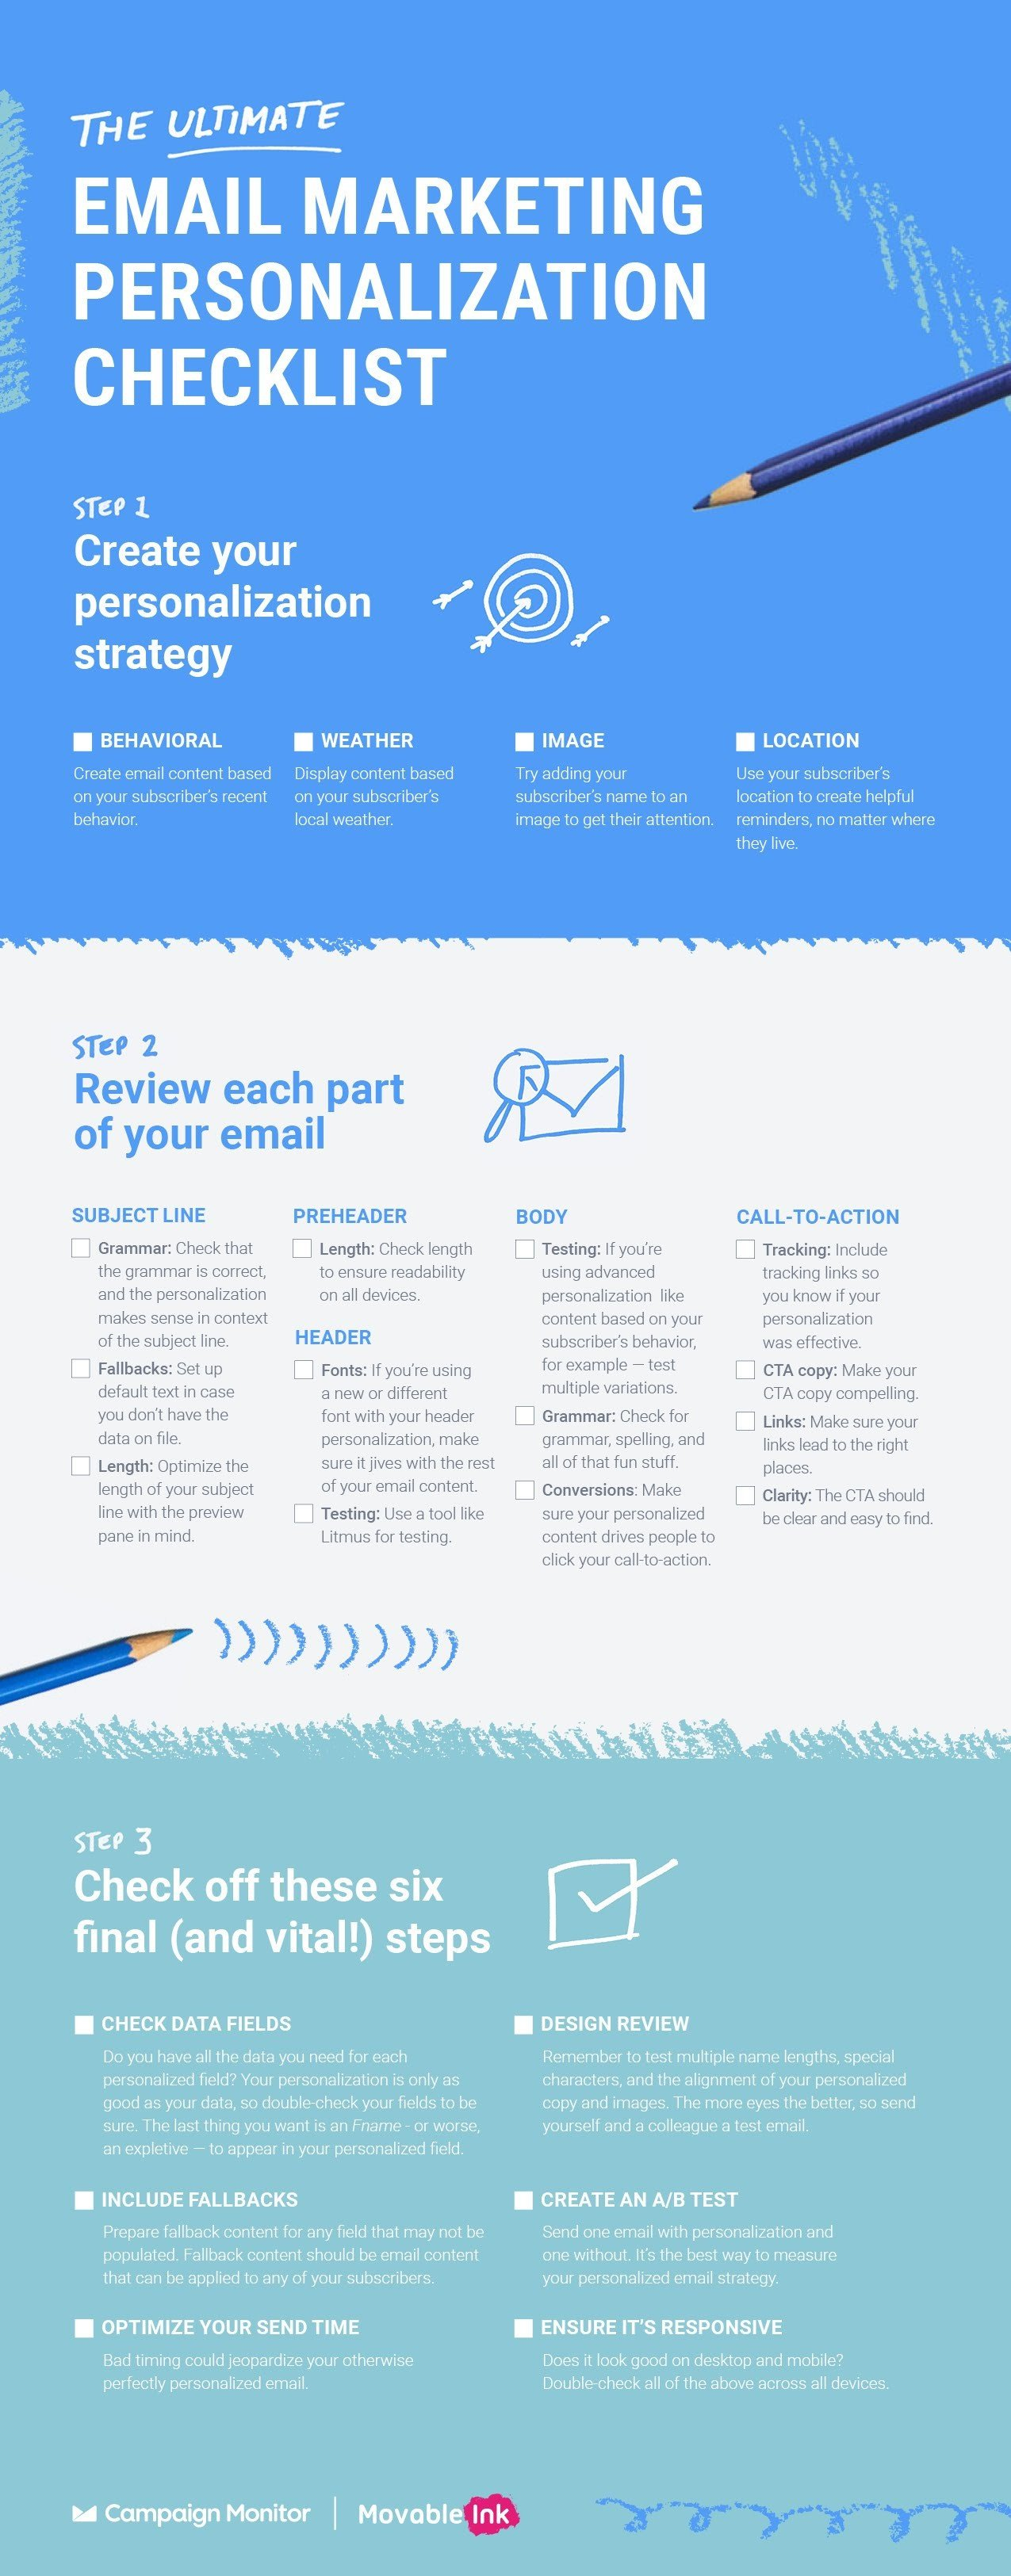 The Ultimate Email Marketing Personalization Checklist [nfographic]